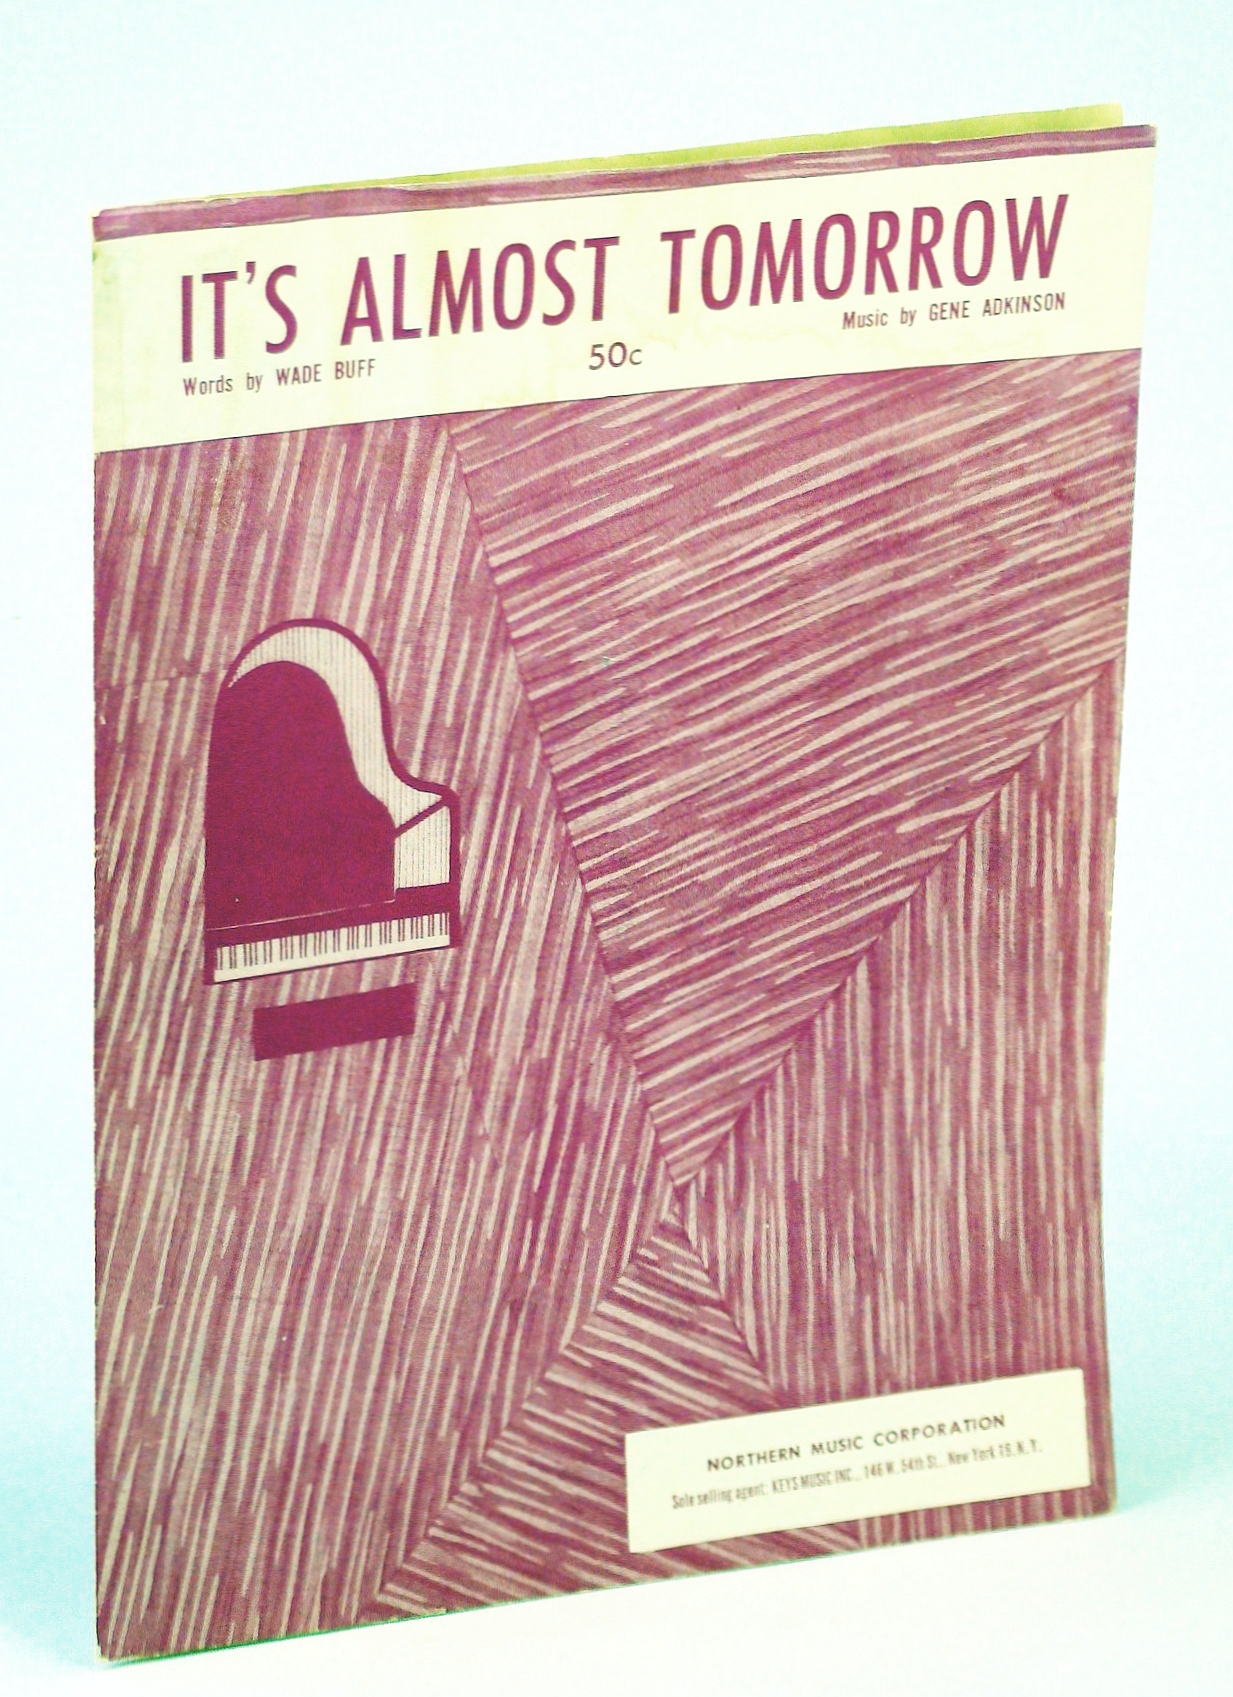 Image for Sheet Music 1955 It's Almost Tomorrow Wade Buff and Gene Adkinson 17